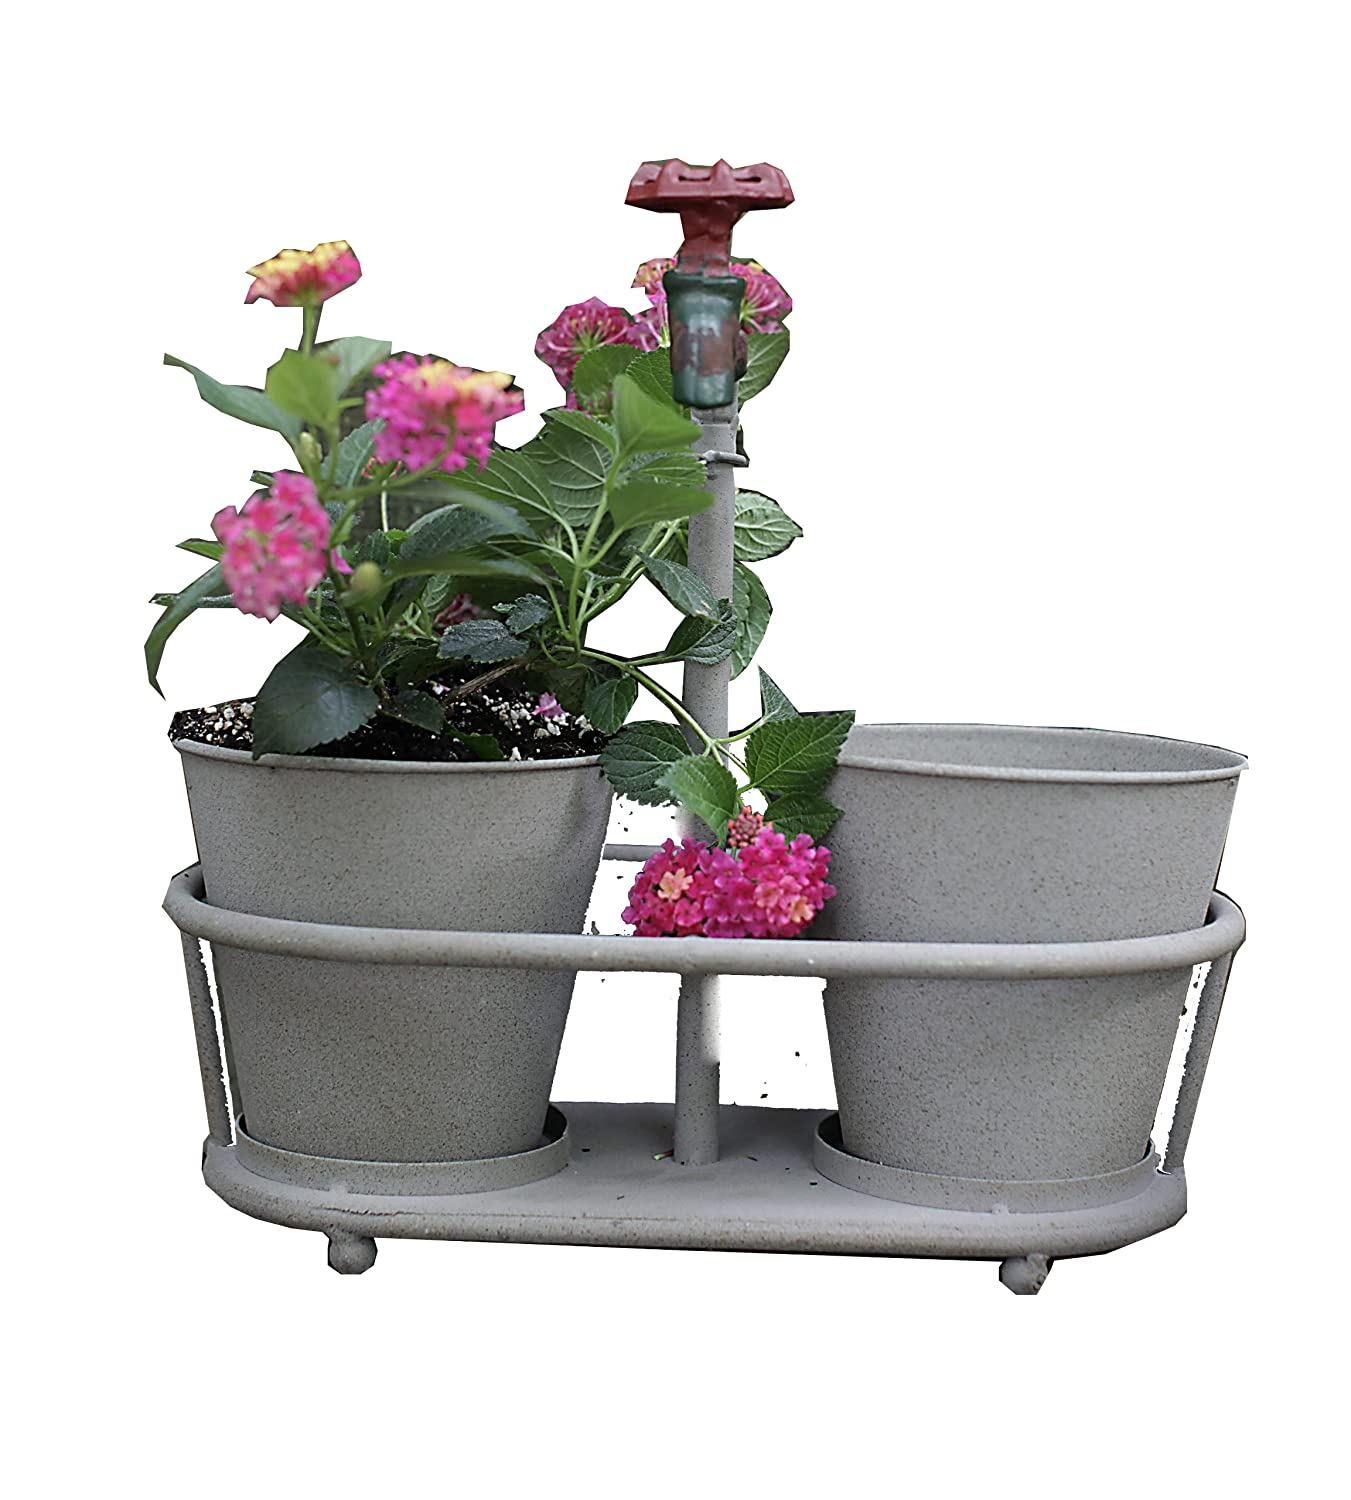 Creative Co-Op DE6913 Metal Planters with Faucet